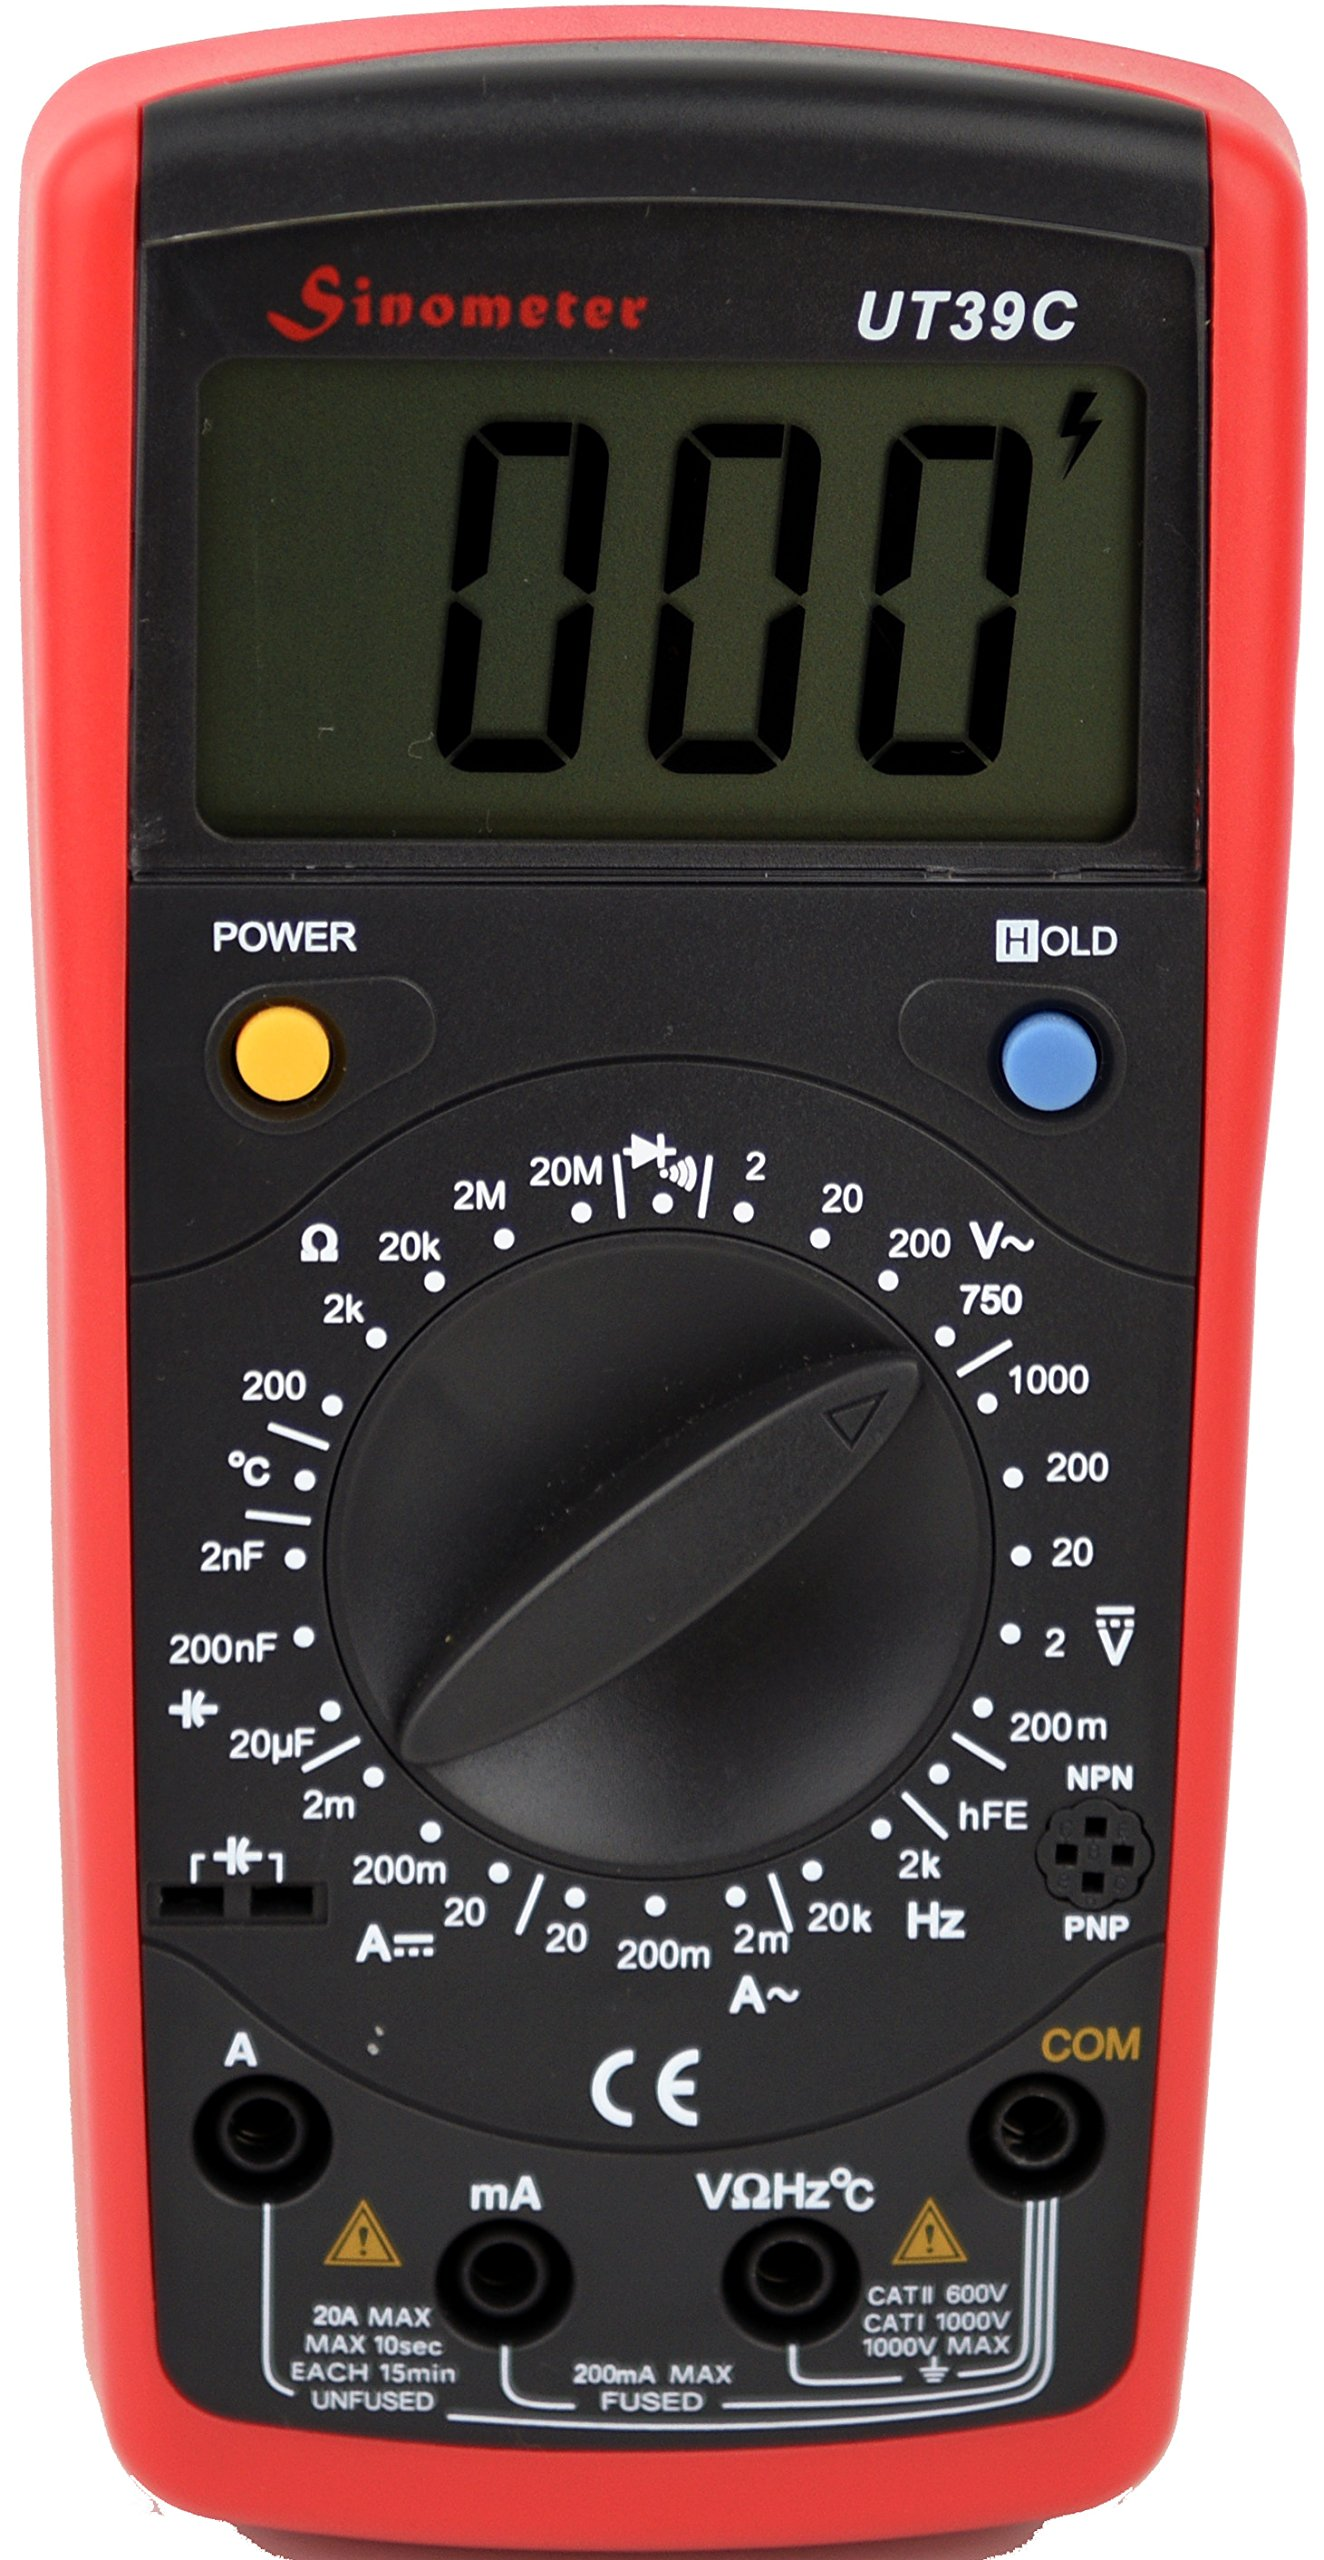 Sinometer OEM Uni-Trend UT39C AC/DC Voltage and Current Up To 20A Measurement, Digital Multimeter With High Resolution and Accuracy